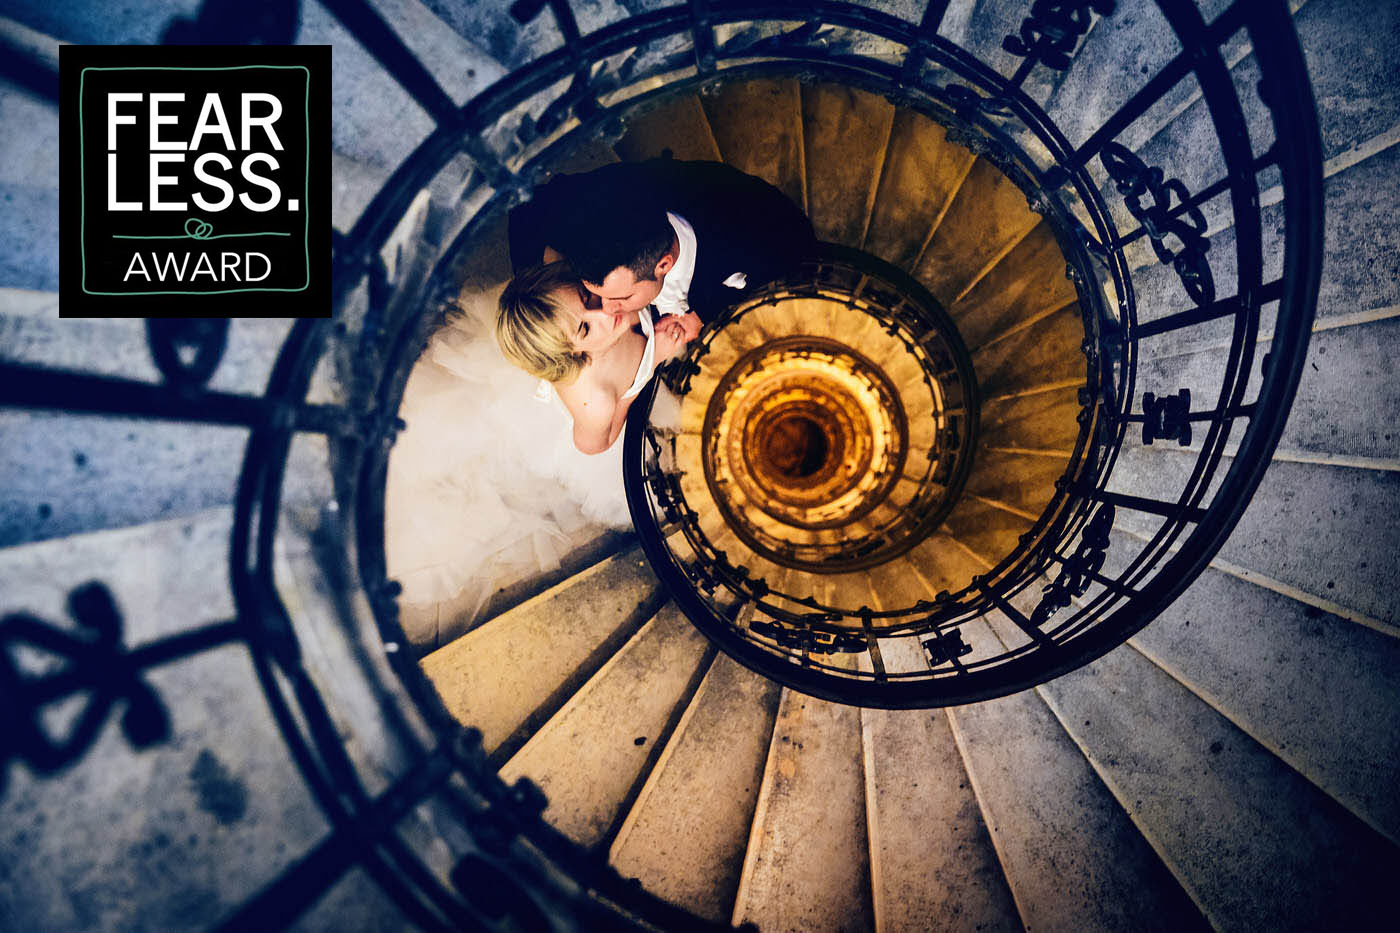 award-winning-wedding-photos-ispwp-fearless-14